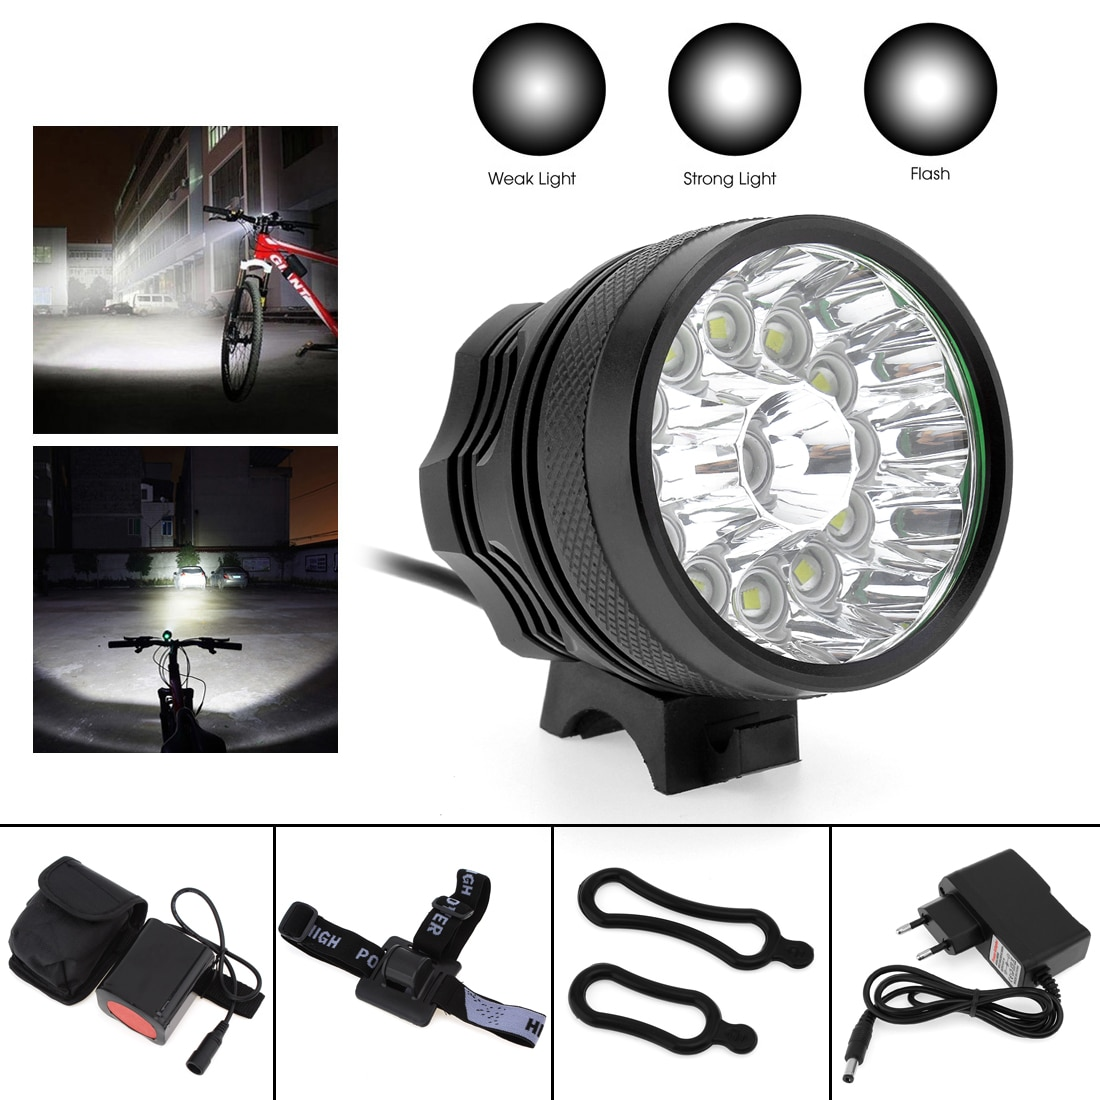 SecurityIng  Bicycle Headlights XM-L T6 LED Bike  Lamp Cycling Torch 6500LM with 8.4V 6400mAh Battery Bicycle Lights